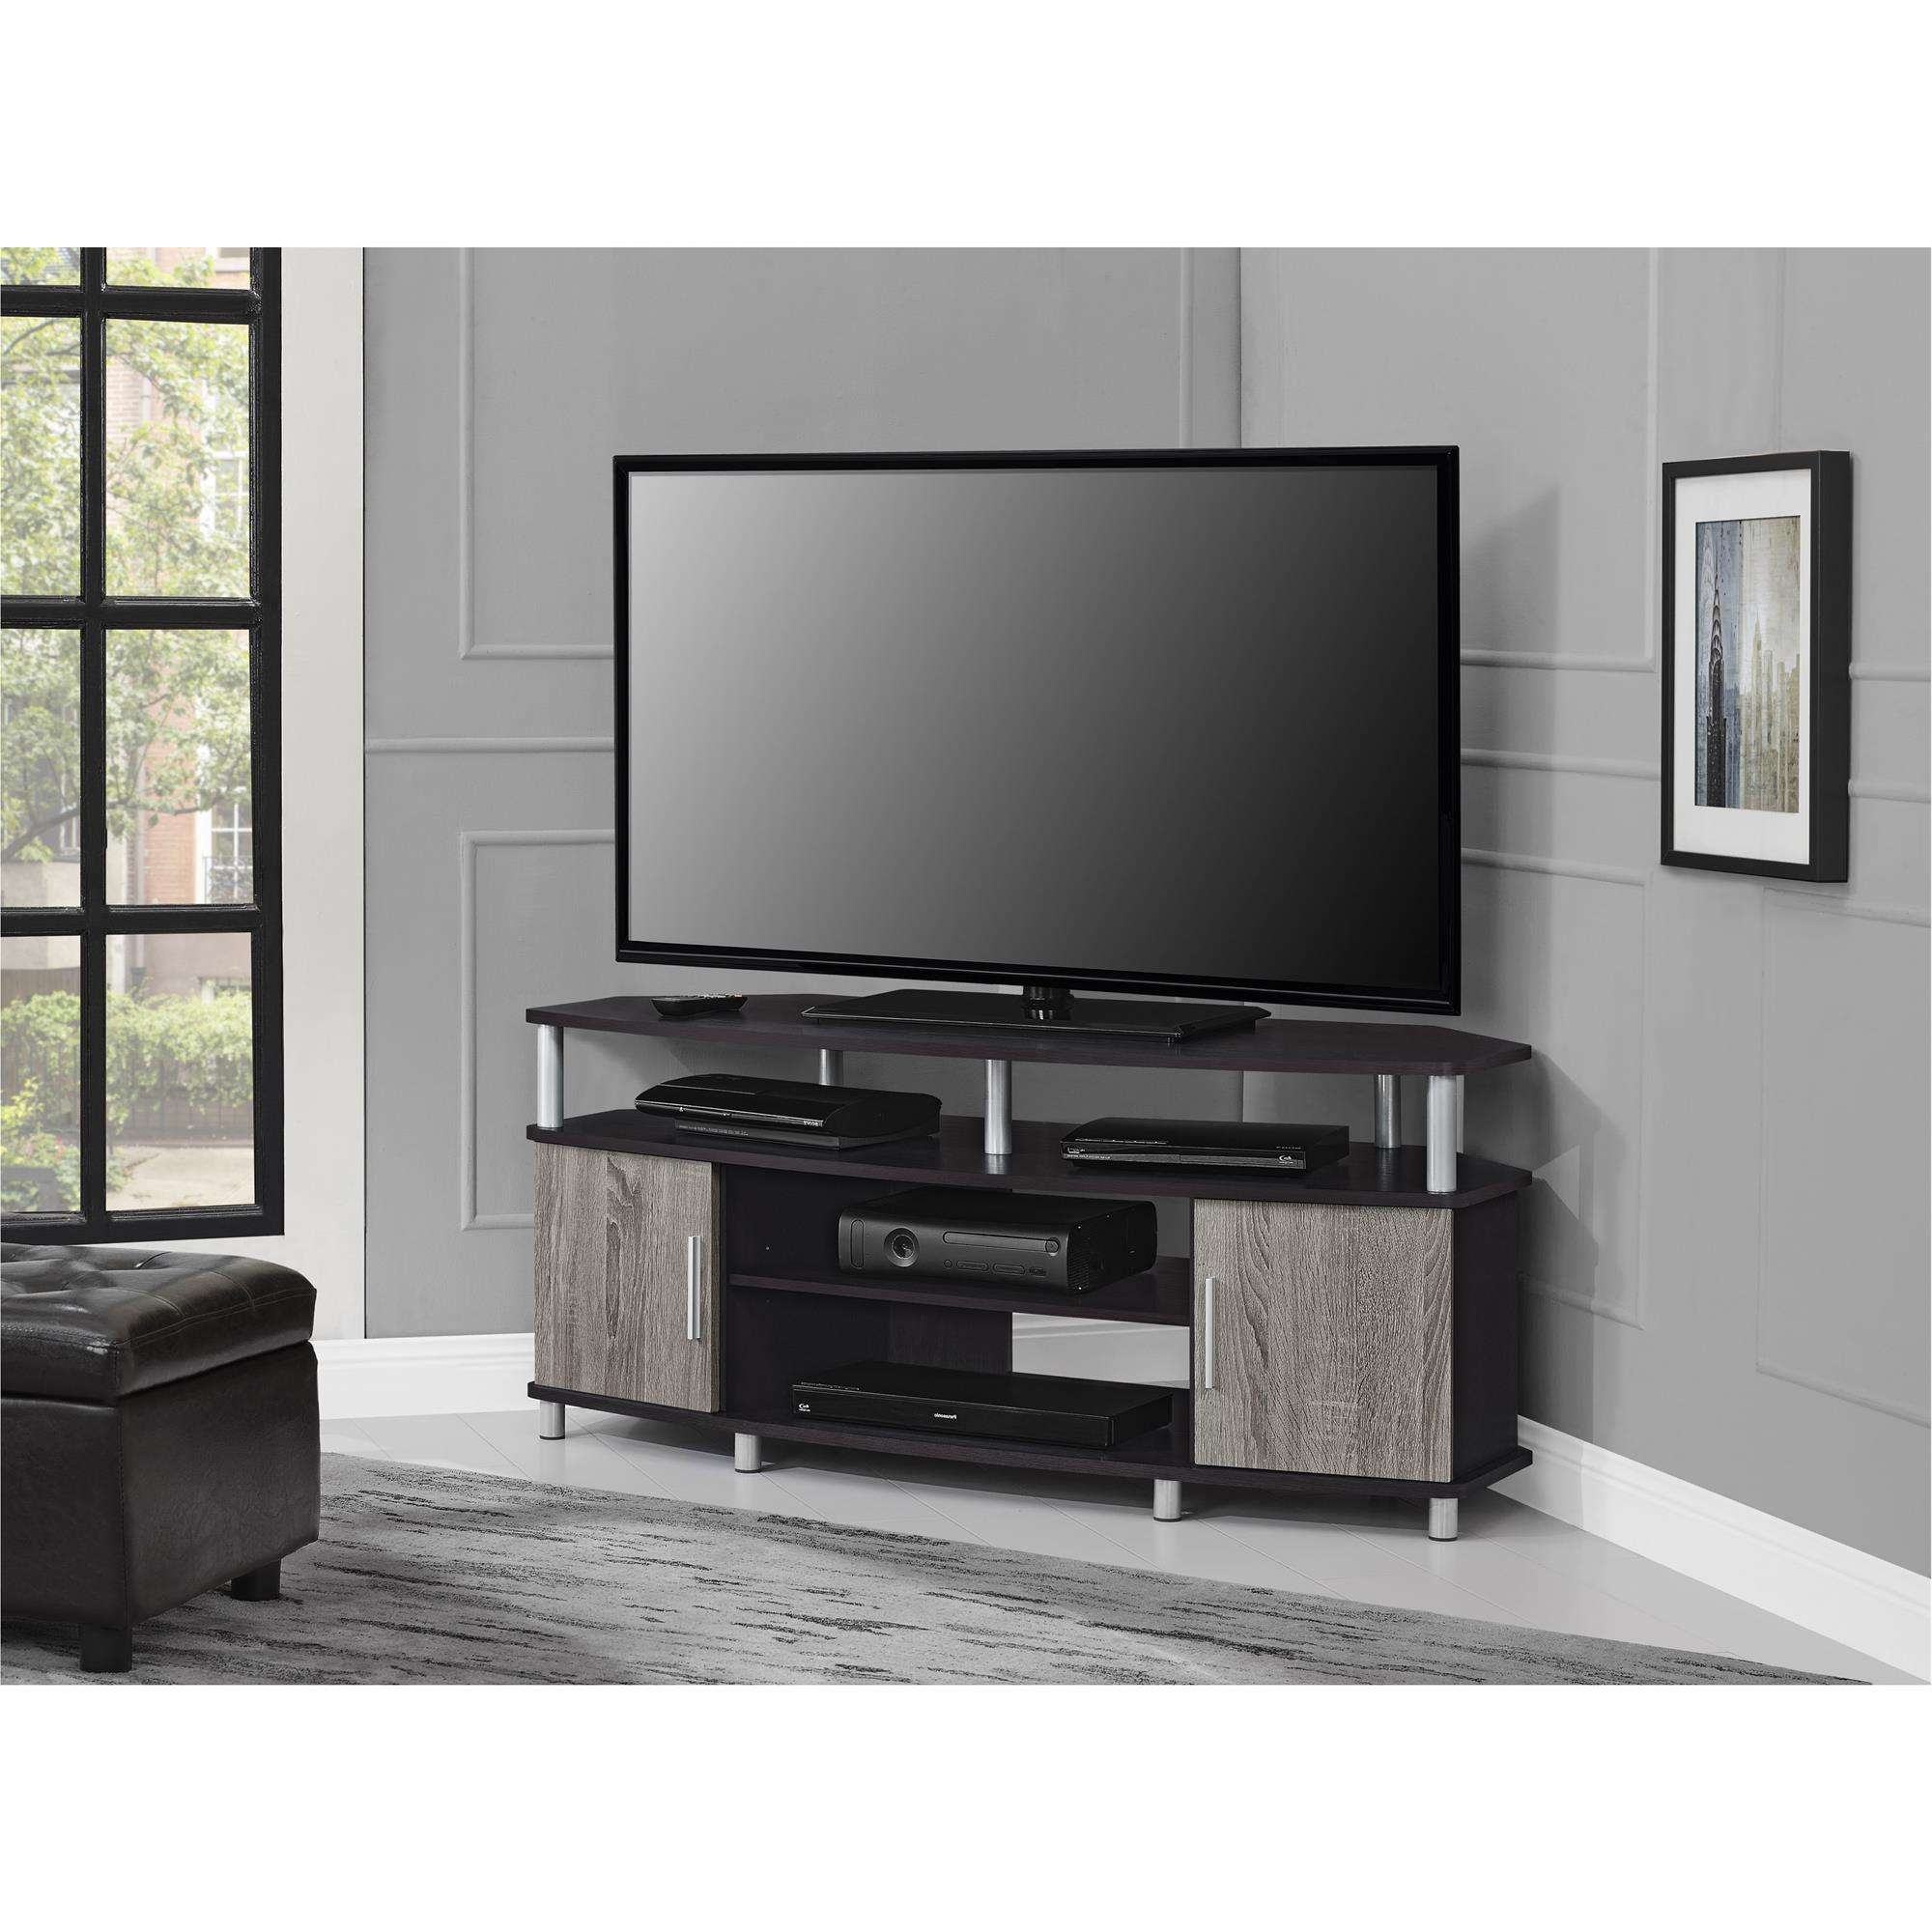 Tv Stands For Inch Furnitures Stylist Corner Stand Flat Screen Within Corner 55 Inch Tv Stands (View 5 of 15)